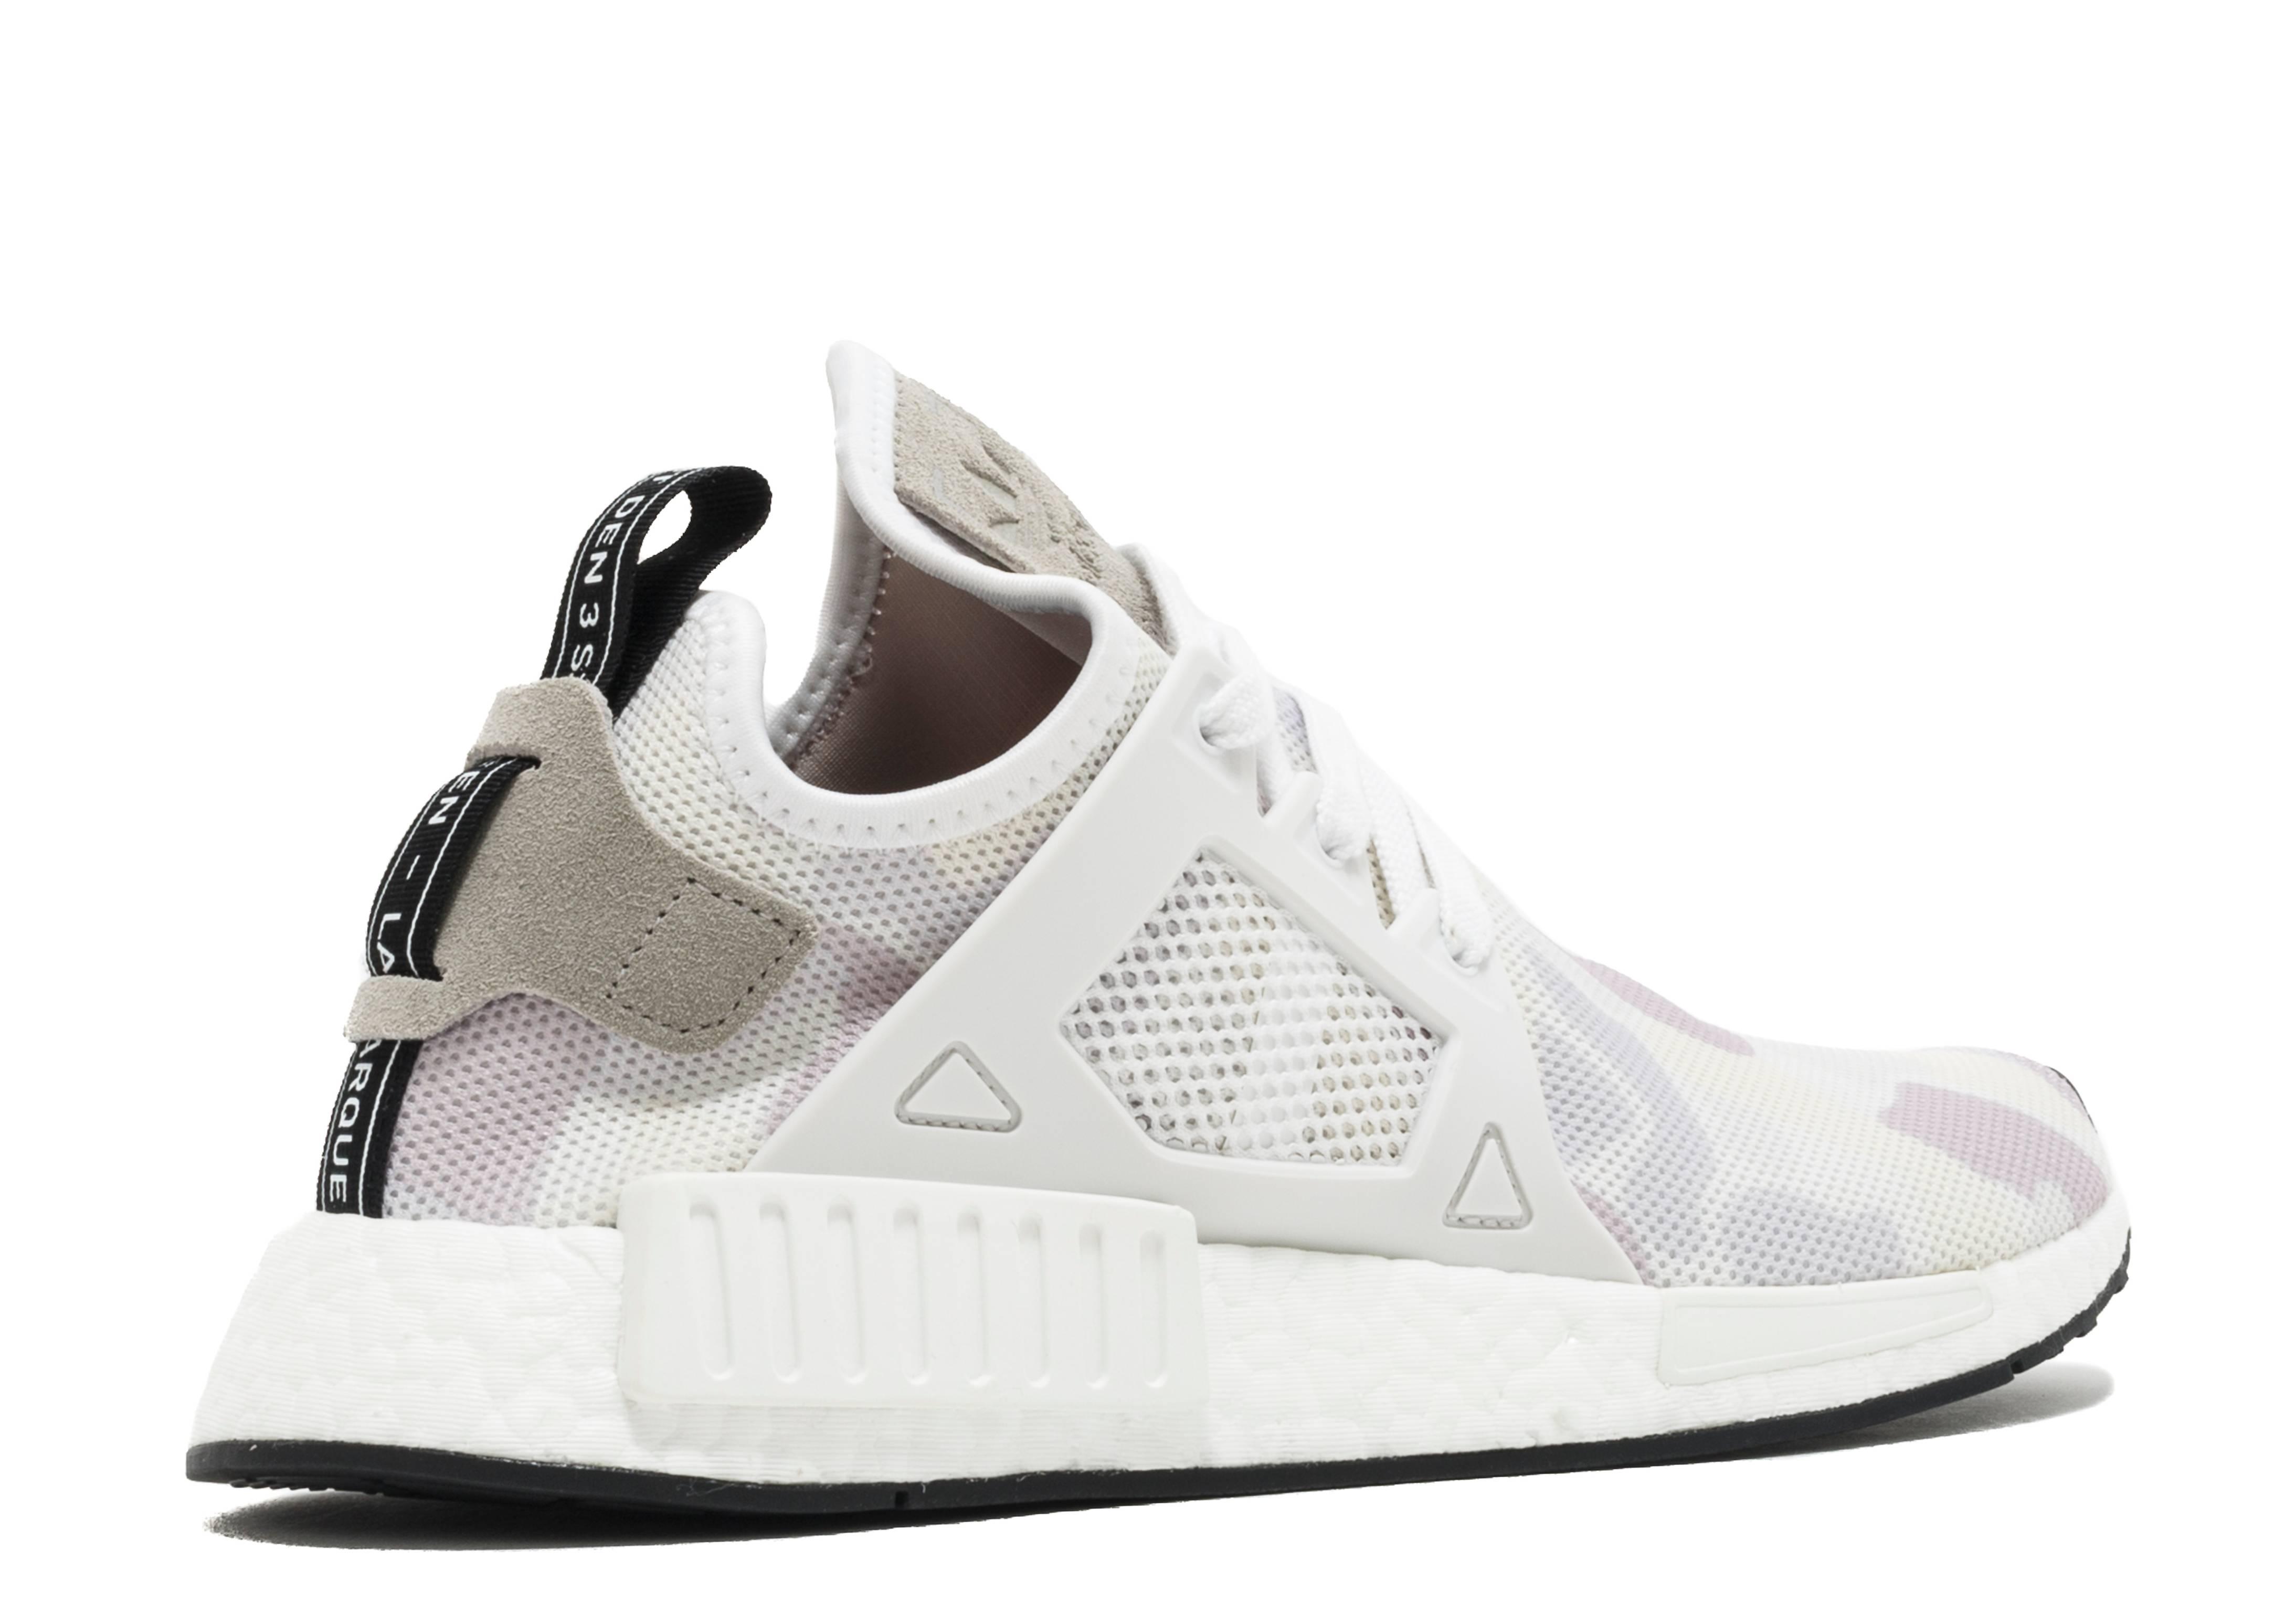 Nlbsyo adidas NMD XR 1 Duck Camo White The Sole Supplier